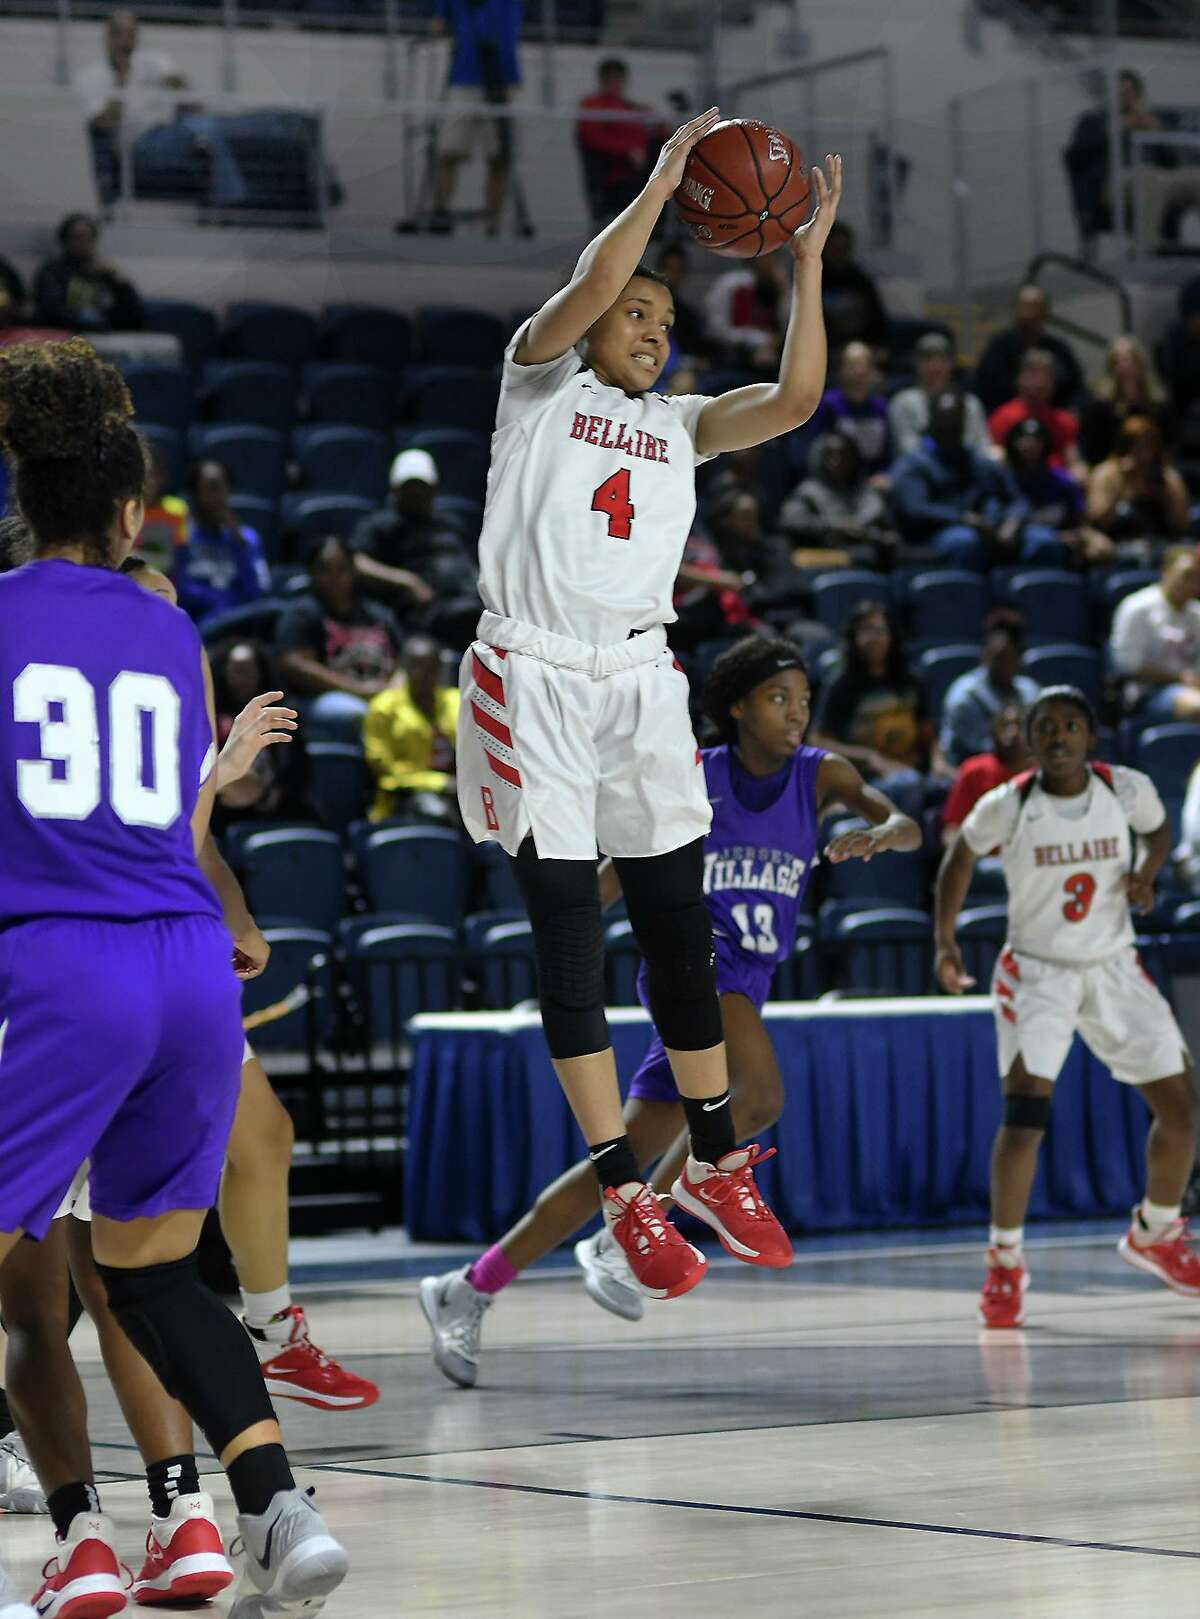 Bellaire junior guard Ravyn Ellis (4) skies for a rebound against Jersey Village during the 4th quarter of their Region III-6A UIL Girls Basketball Bi-District playoff matchup at Delmar Fieldhouse in Houston on Feb. 17, 2020.